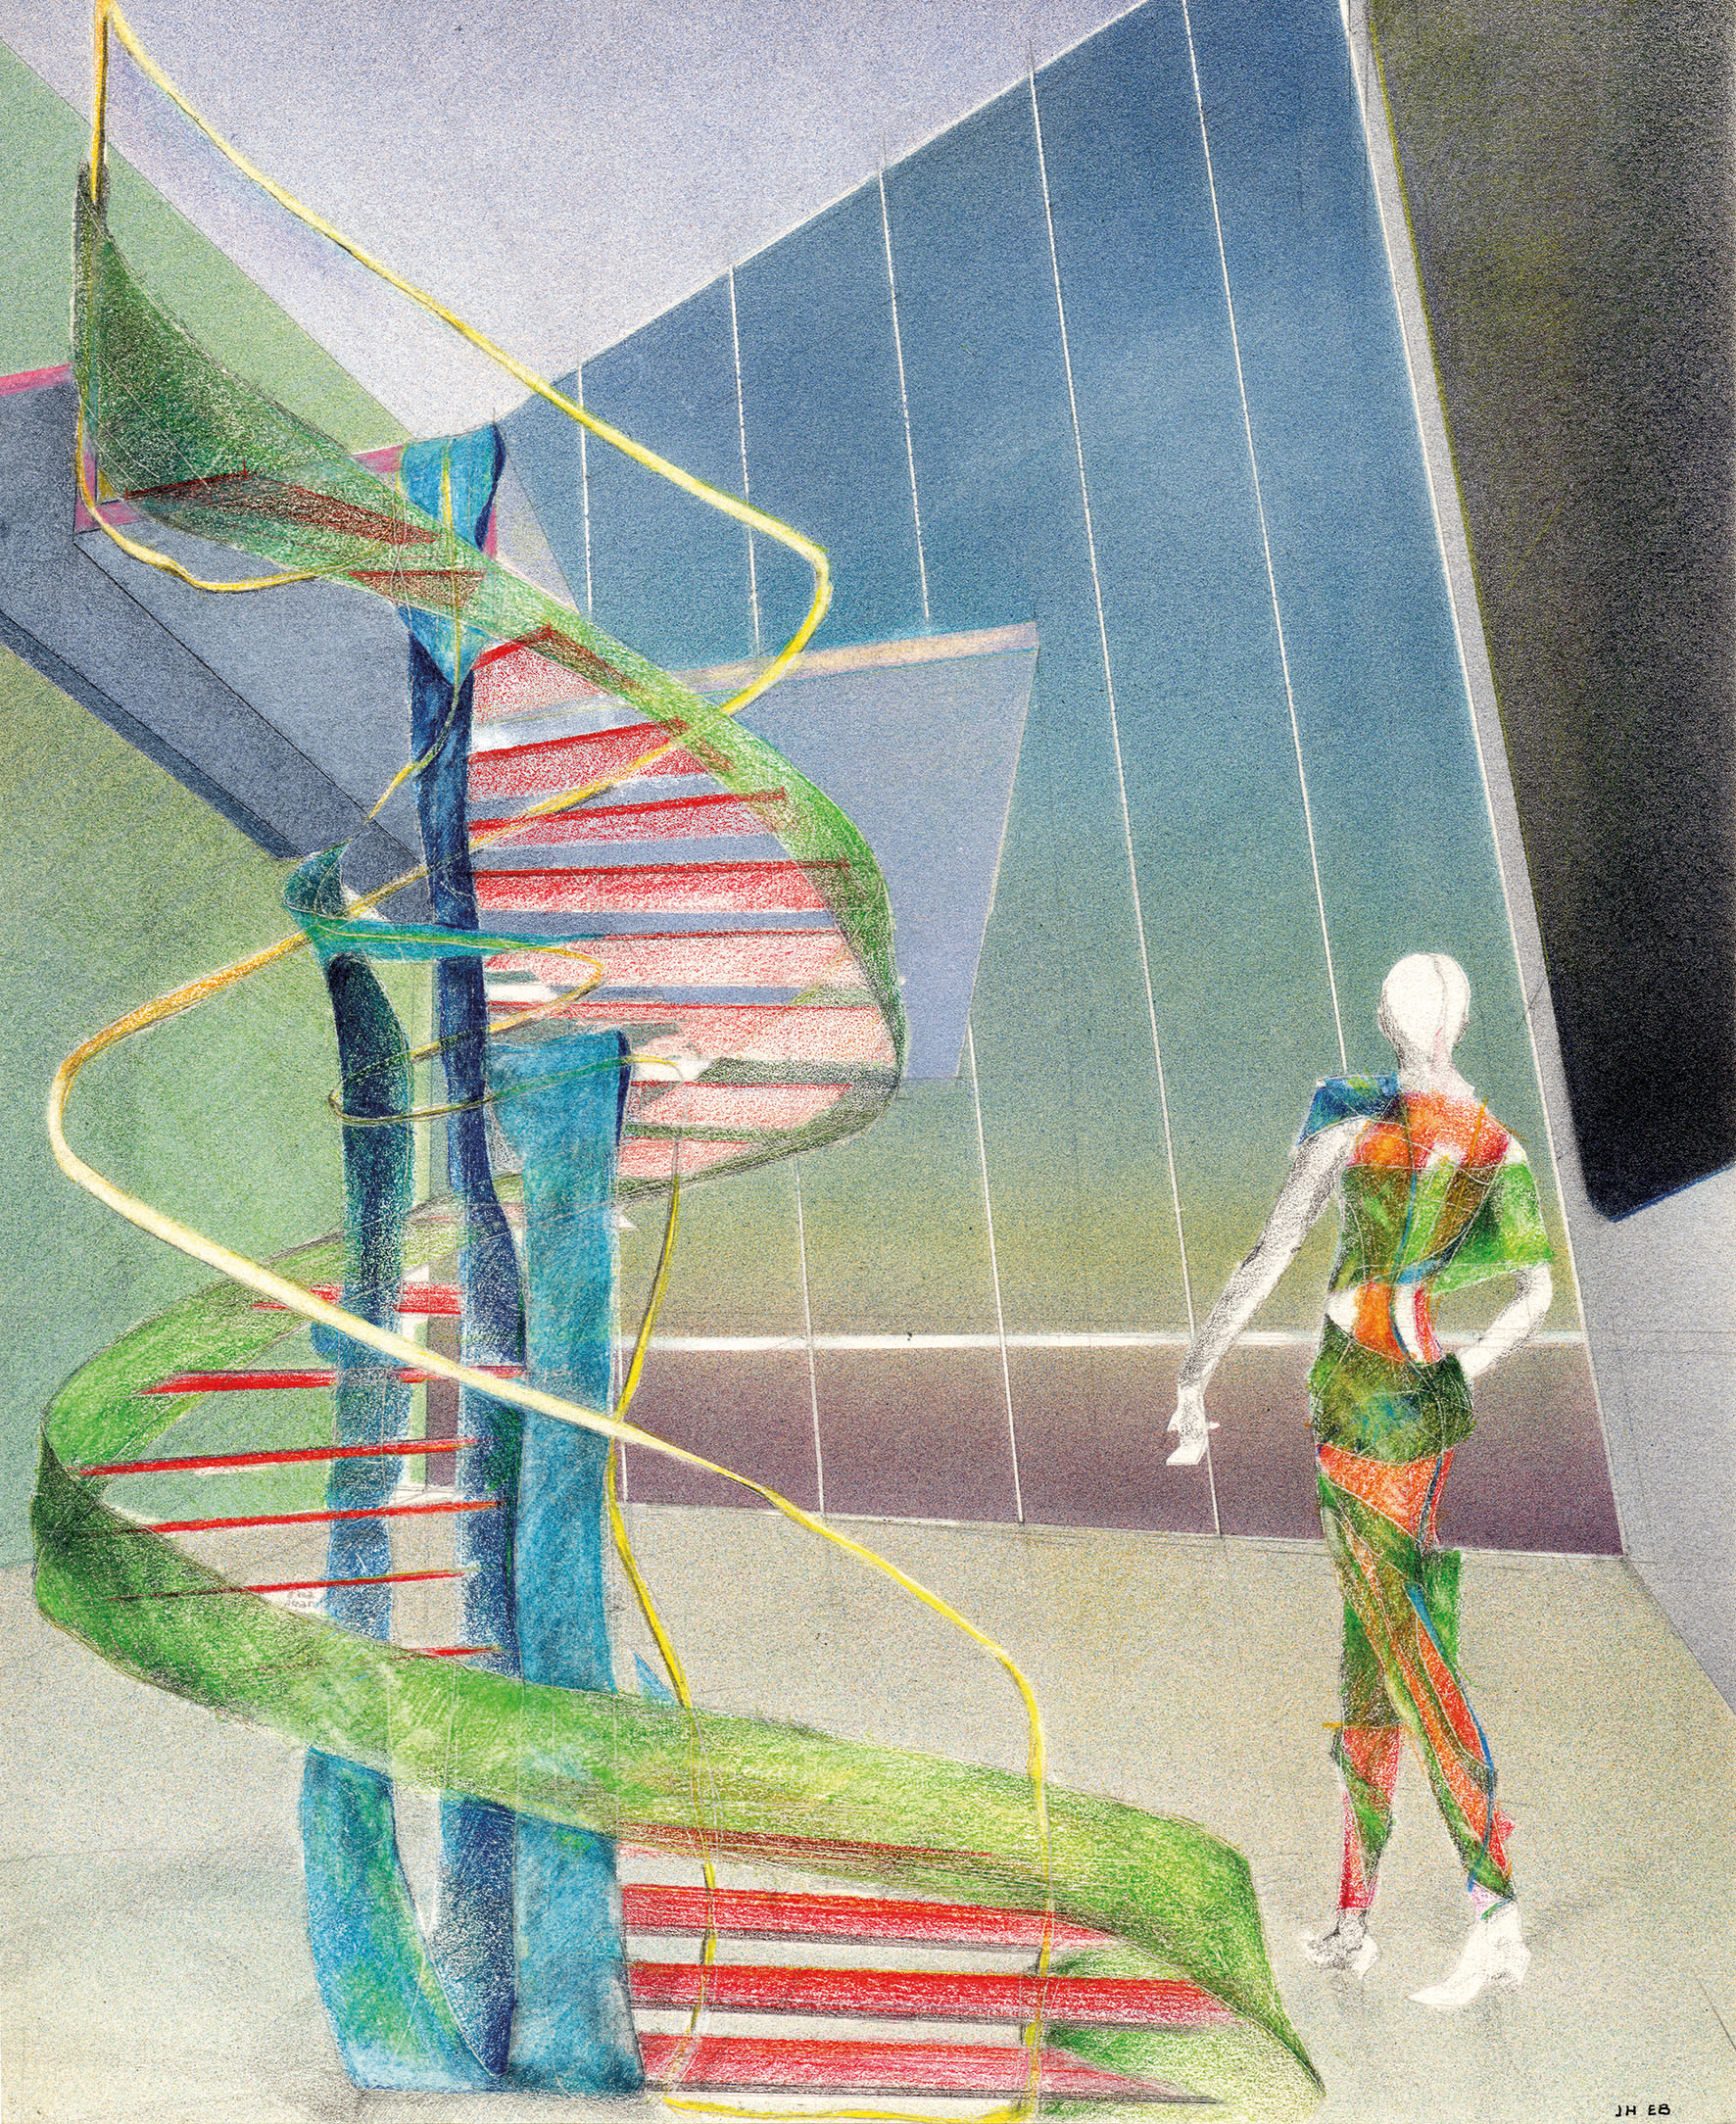 Reminiscences / The textile-staircase: change your mind as often as you change your underwear , 1985 Airbrush painting, pencil on paper 25.7 x 21.2 cm